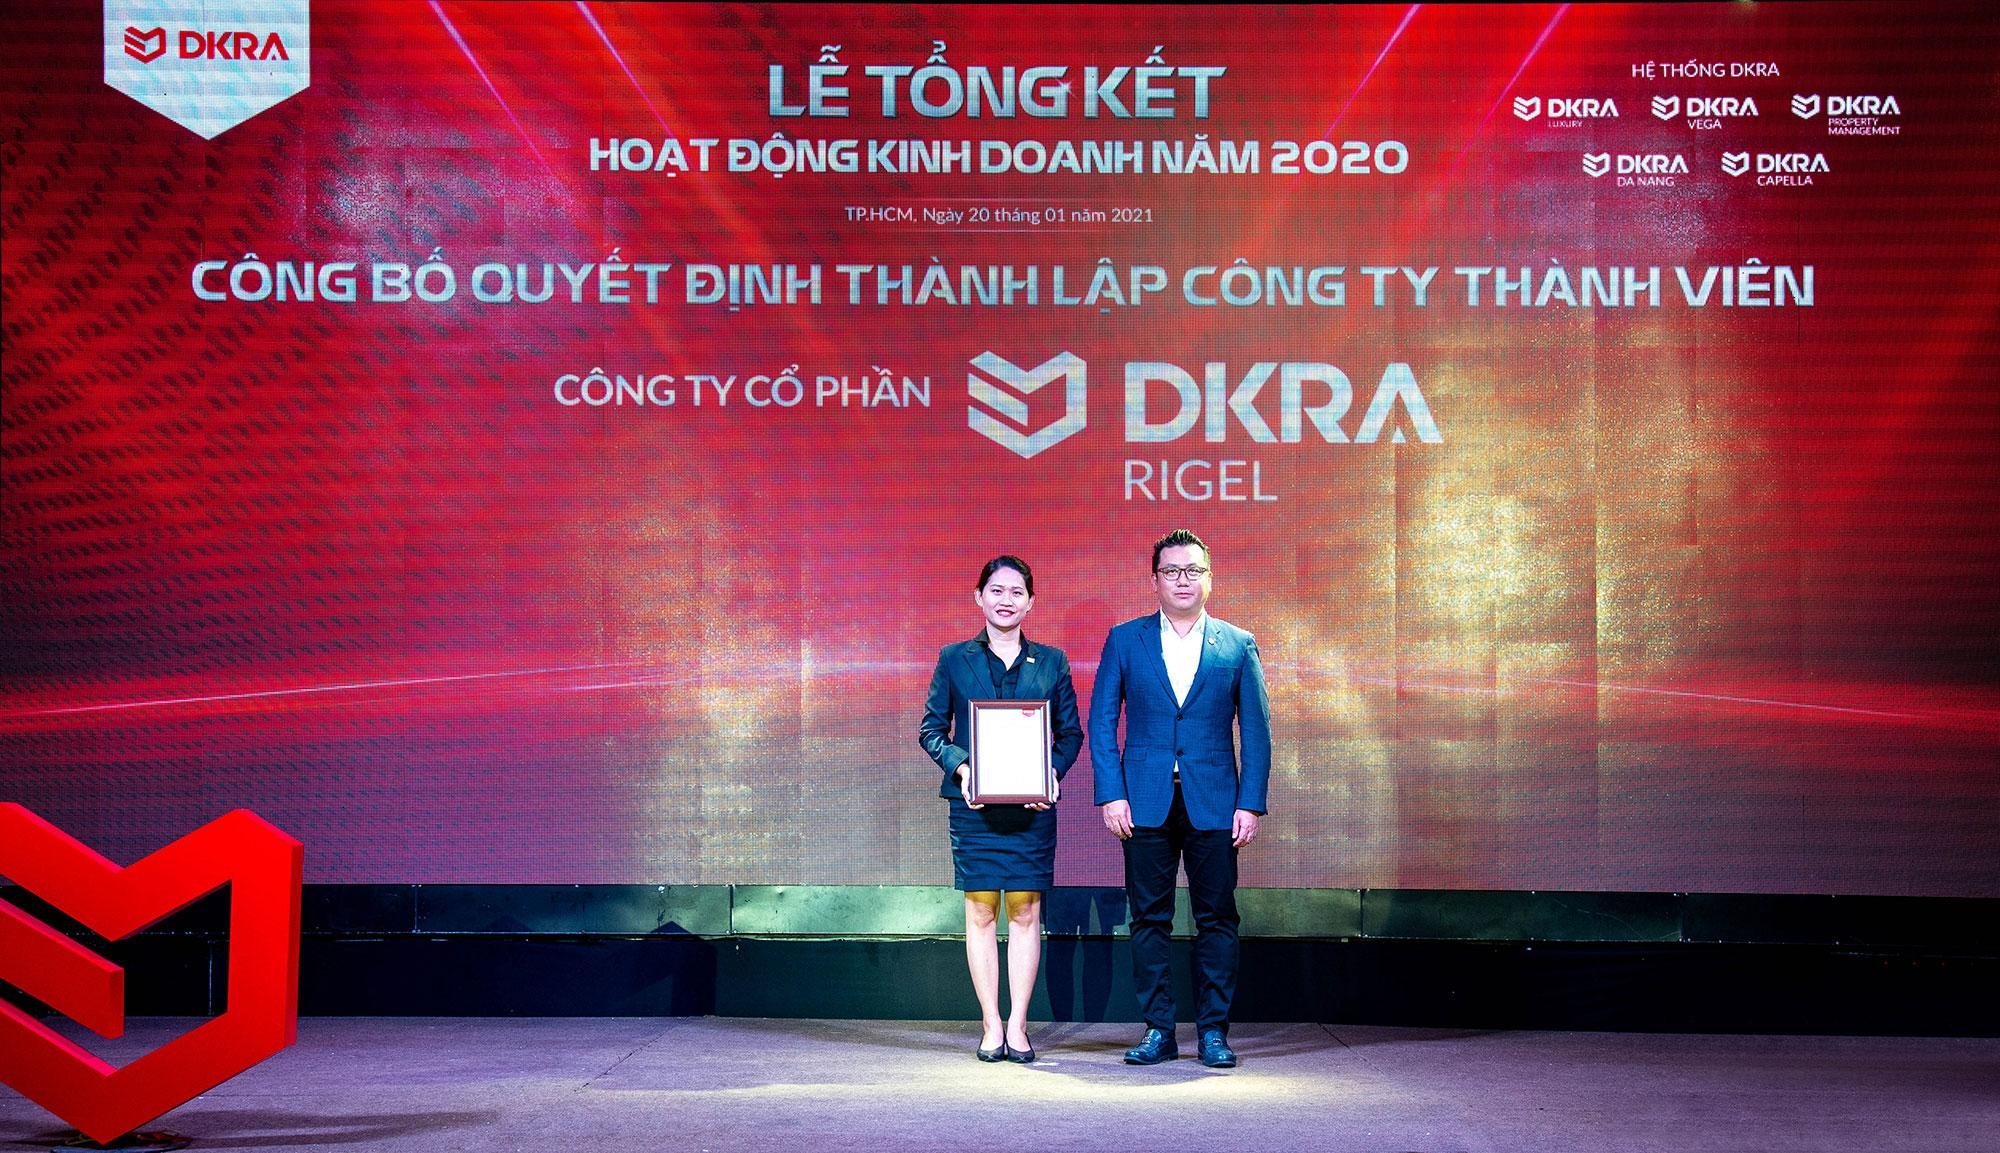 22.-Quyet-dinh -thanh-lap-con g-ty.jpg